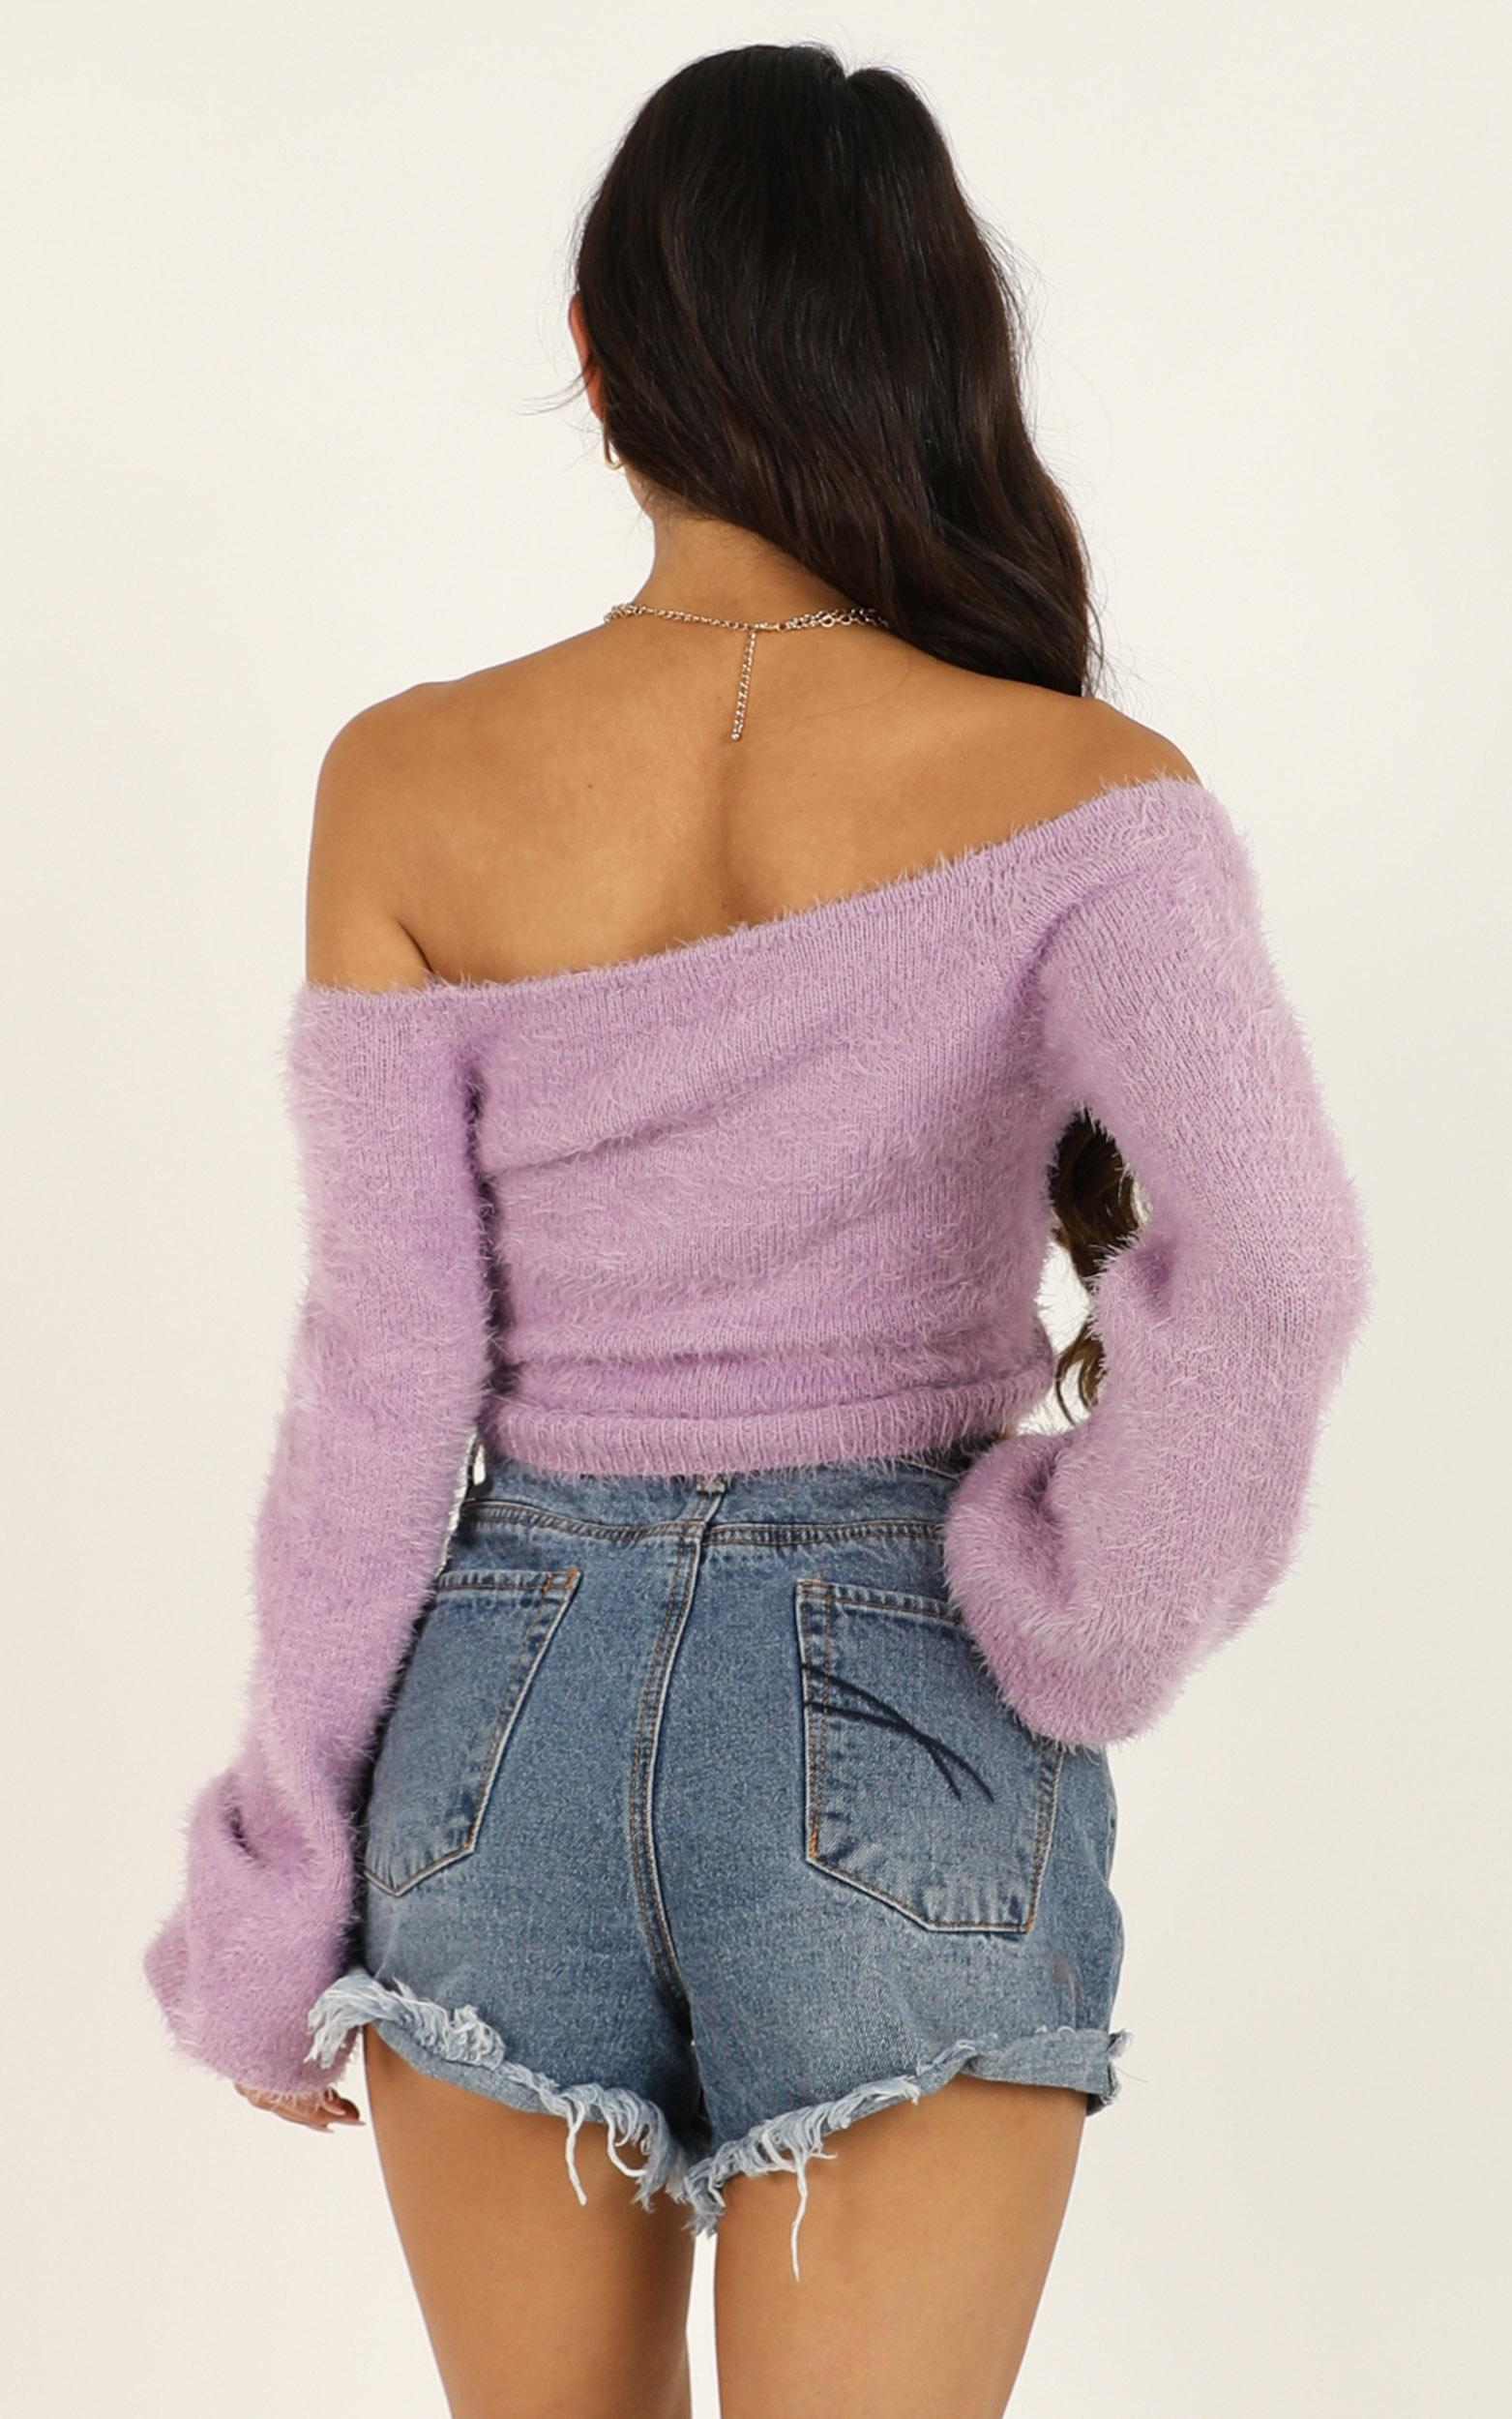 Accepting You knit top in lilac - 12 (L), Purple, hi-res image number null